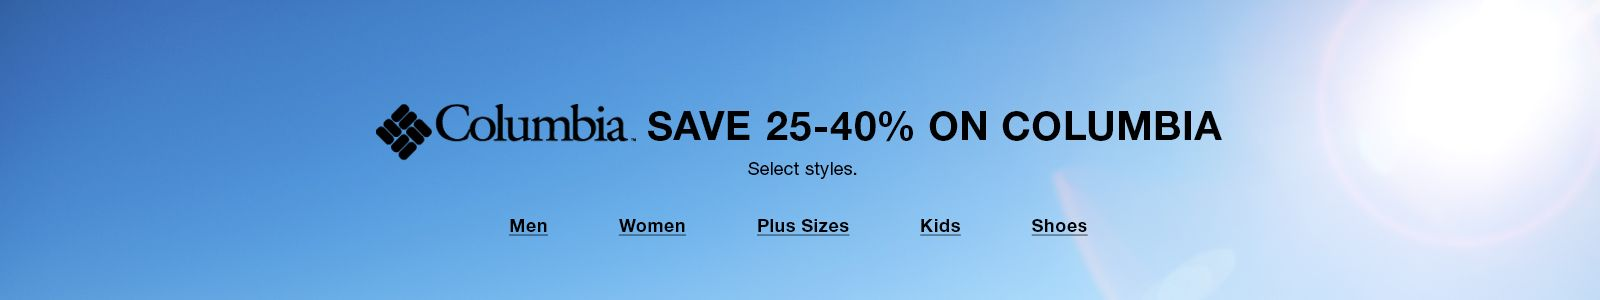 Columbia, Save 25-40 percent on Columbia, Select styles, Men, Women, Plus Sizes, Kids, Shoes